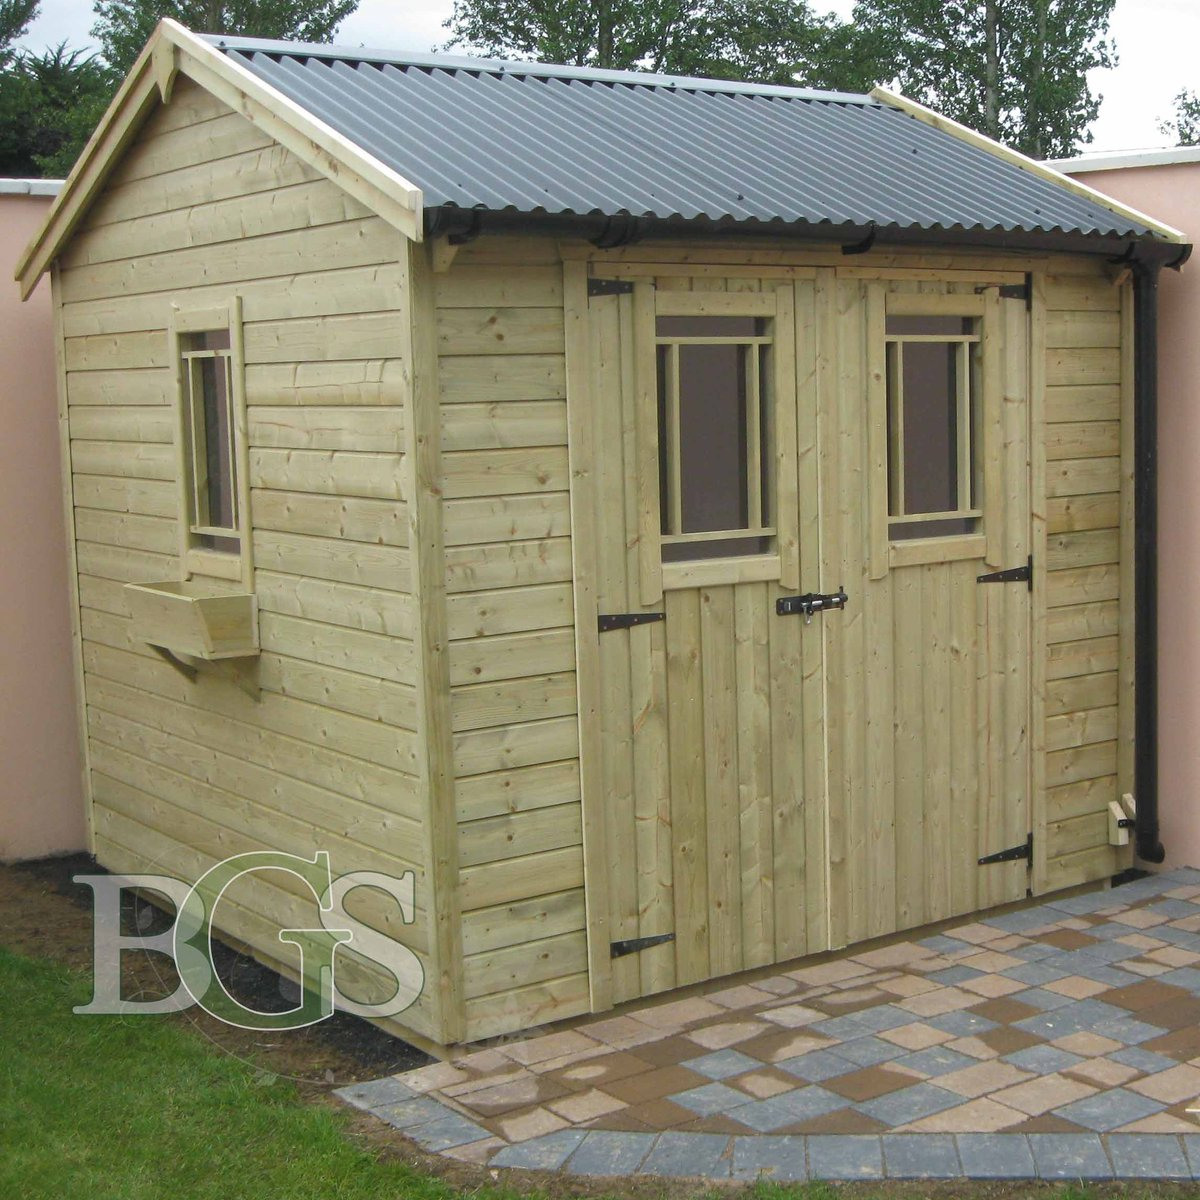 garden sheds with a difference retweets likes to decor - Garden Sheds With A Difference